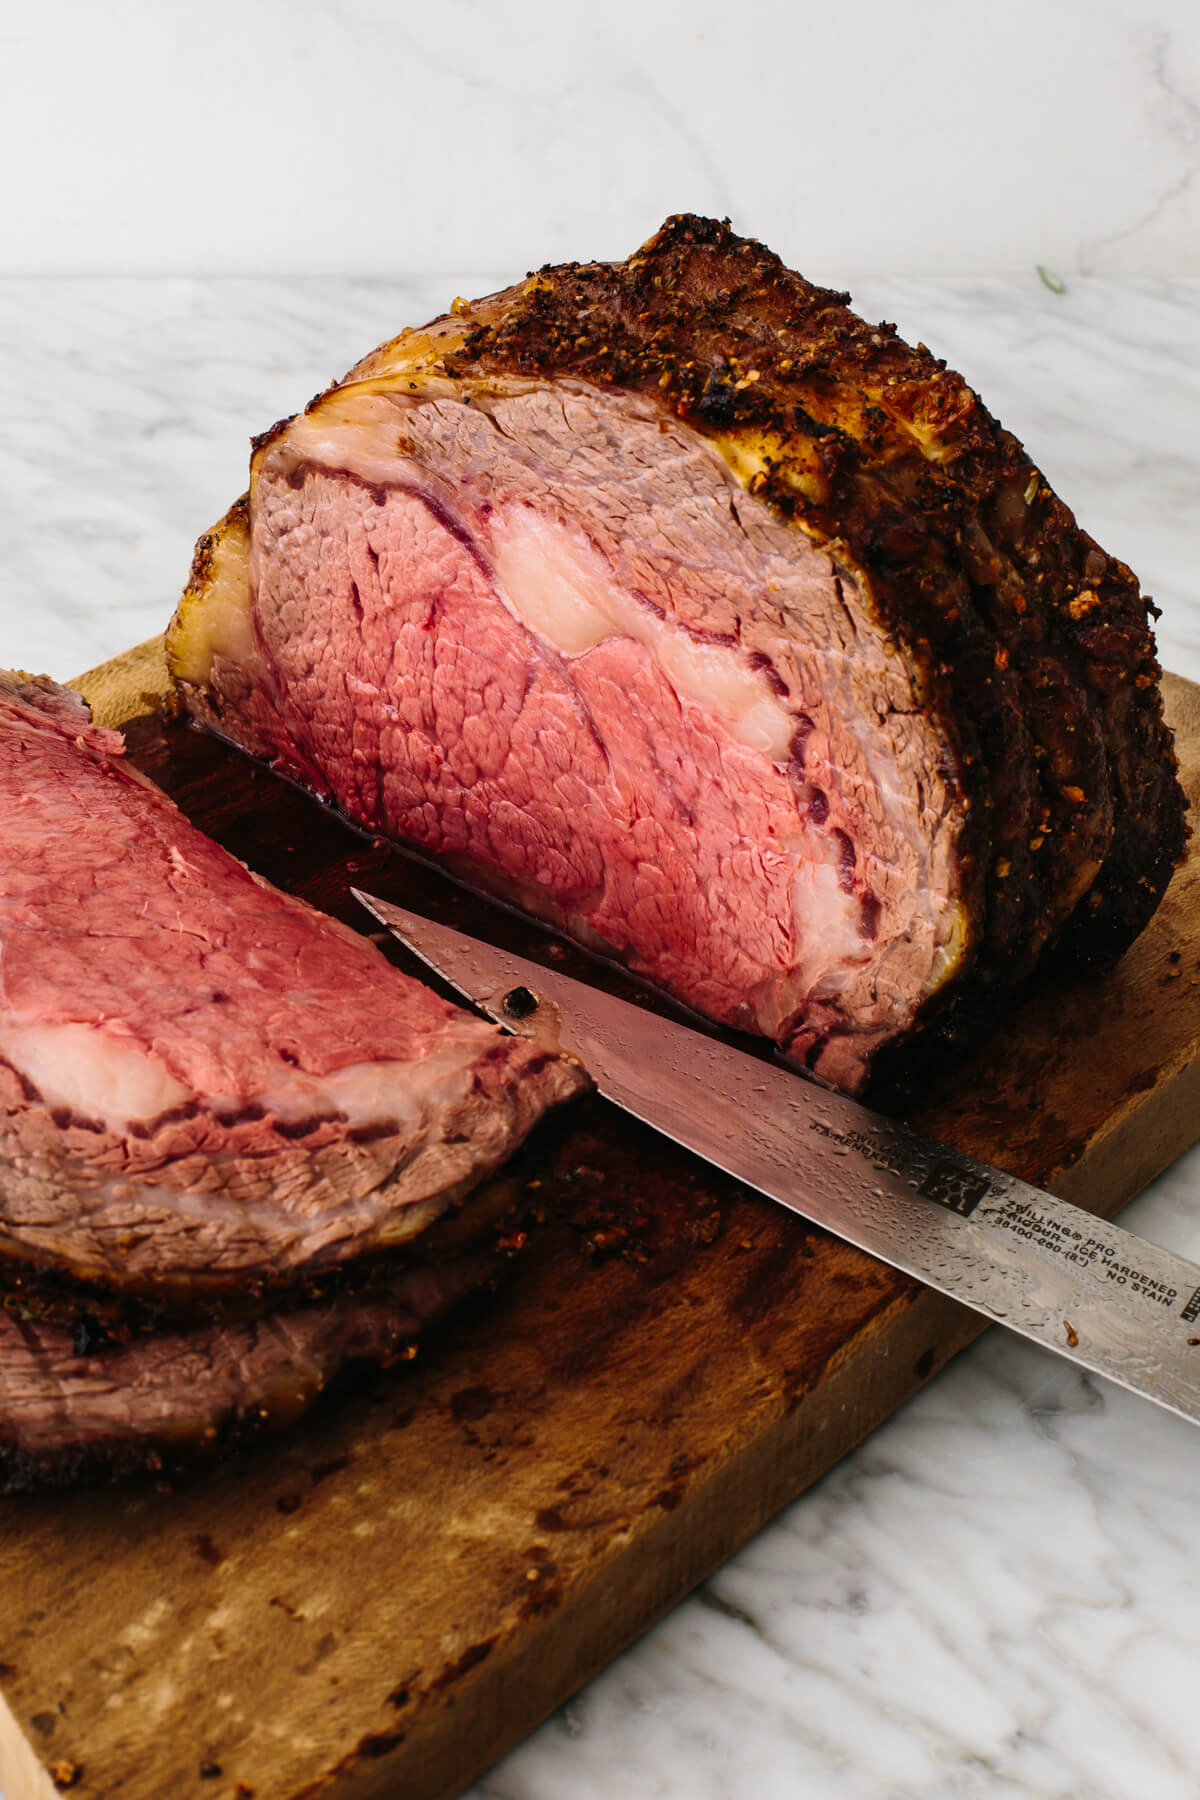 Prime rib on cutting board sliced up.